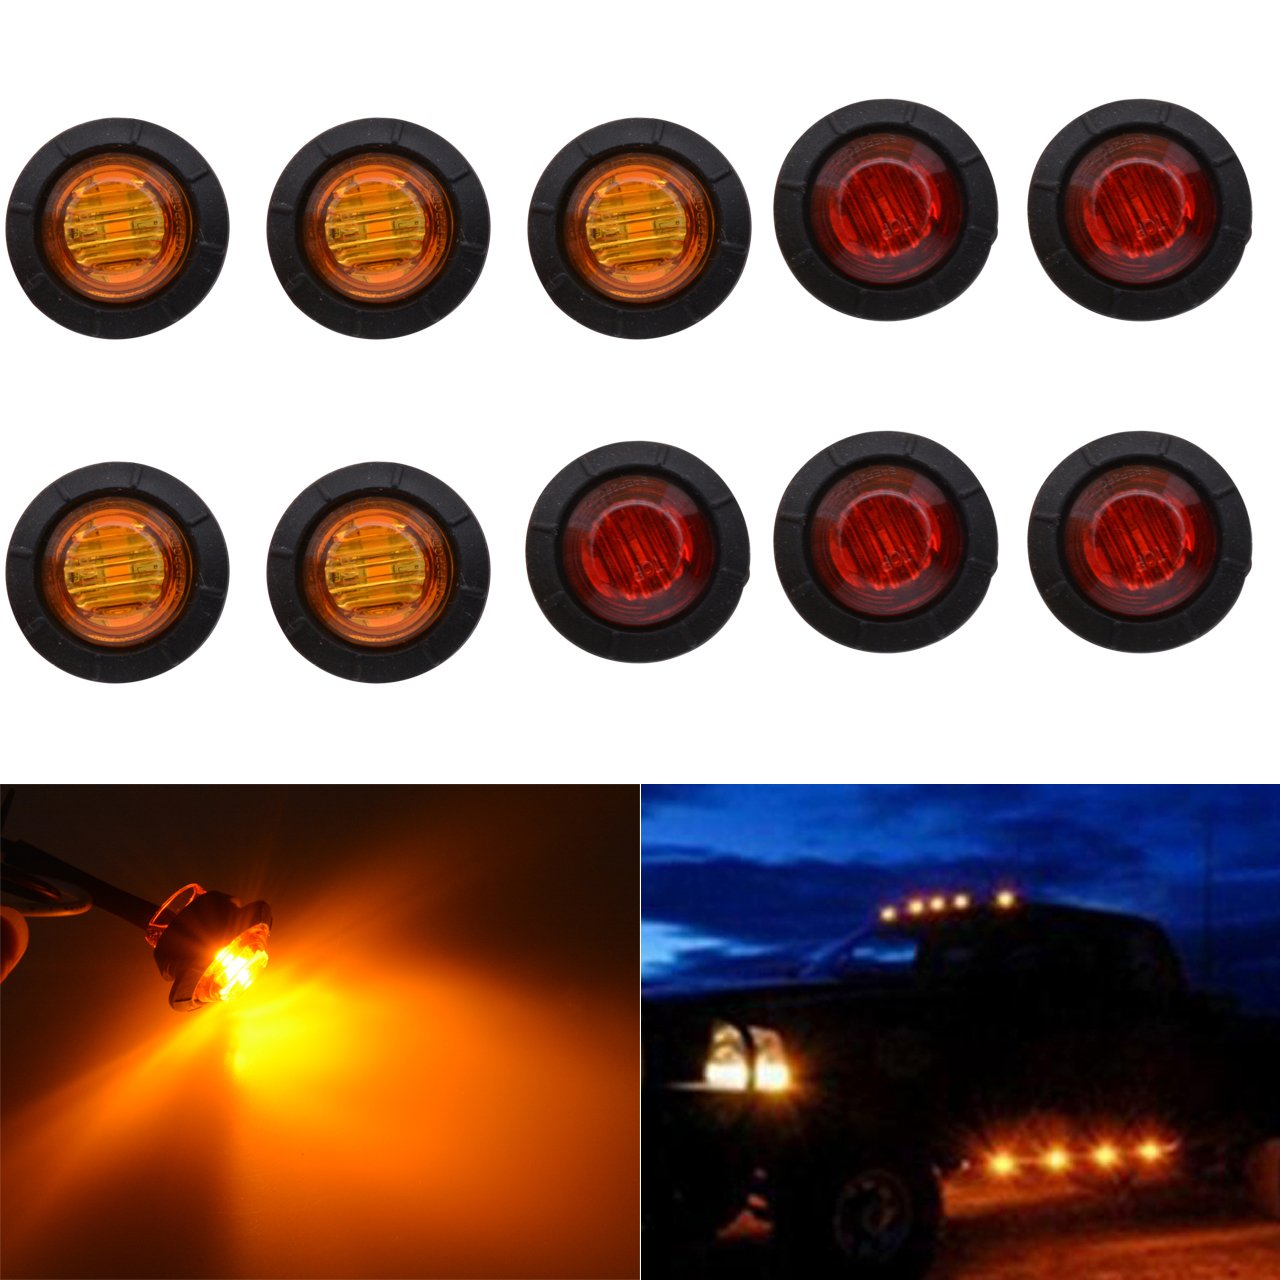 TUINCYN 3/4 Inch Red Round LED Indicator Light Bulbs Bullet Shaped Front Rear Side Markers Marker Light Tail Light Used for Car Trunk.(Pack of 10)